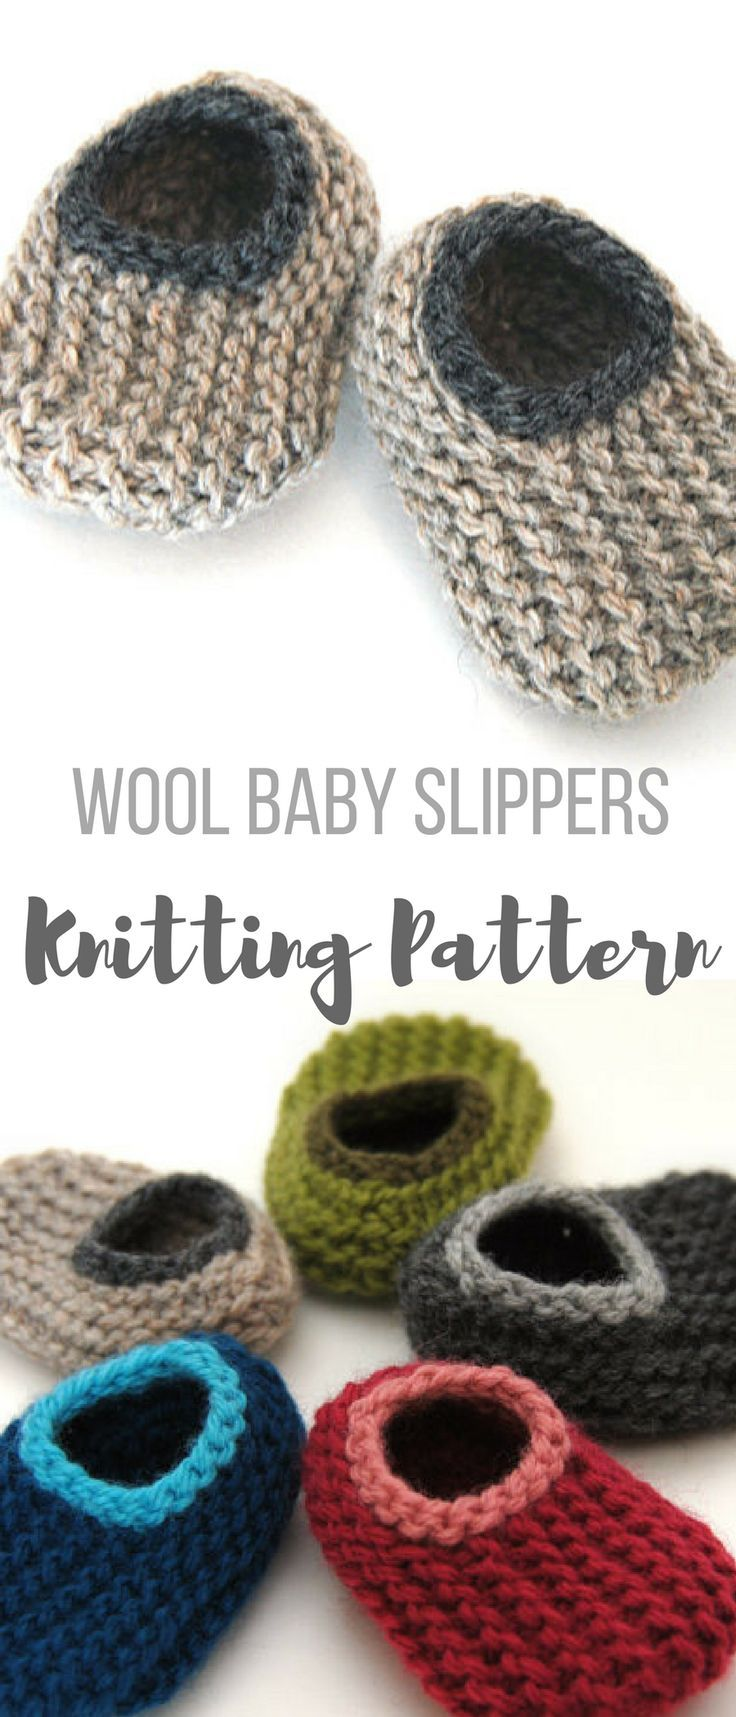 Instant Download PDF Knitting Pattern - Wool Baby Slippers, Sizes 0-18 Months, Instructions for 4 Sizes, Booties, Crib Shoes #knitbabyslippers #babybootiesknittingpattern #knittingpatternbabybooties #knitbabybooties #affiliate #knitwoolbabyslippers